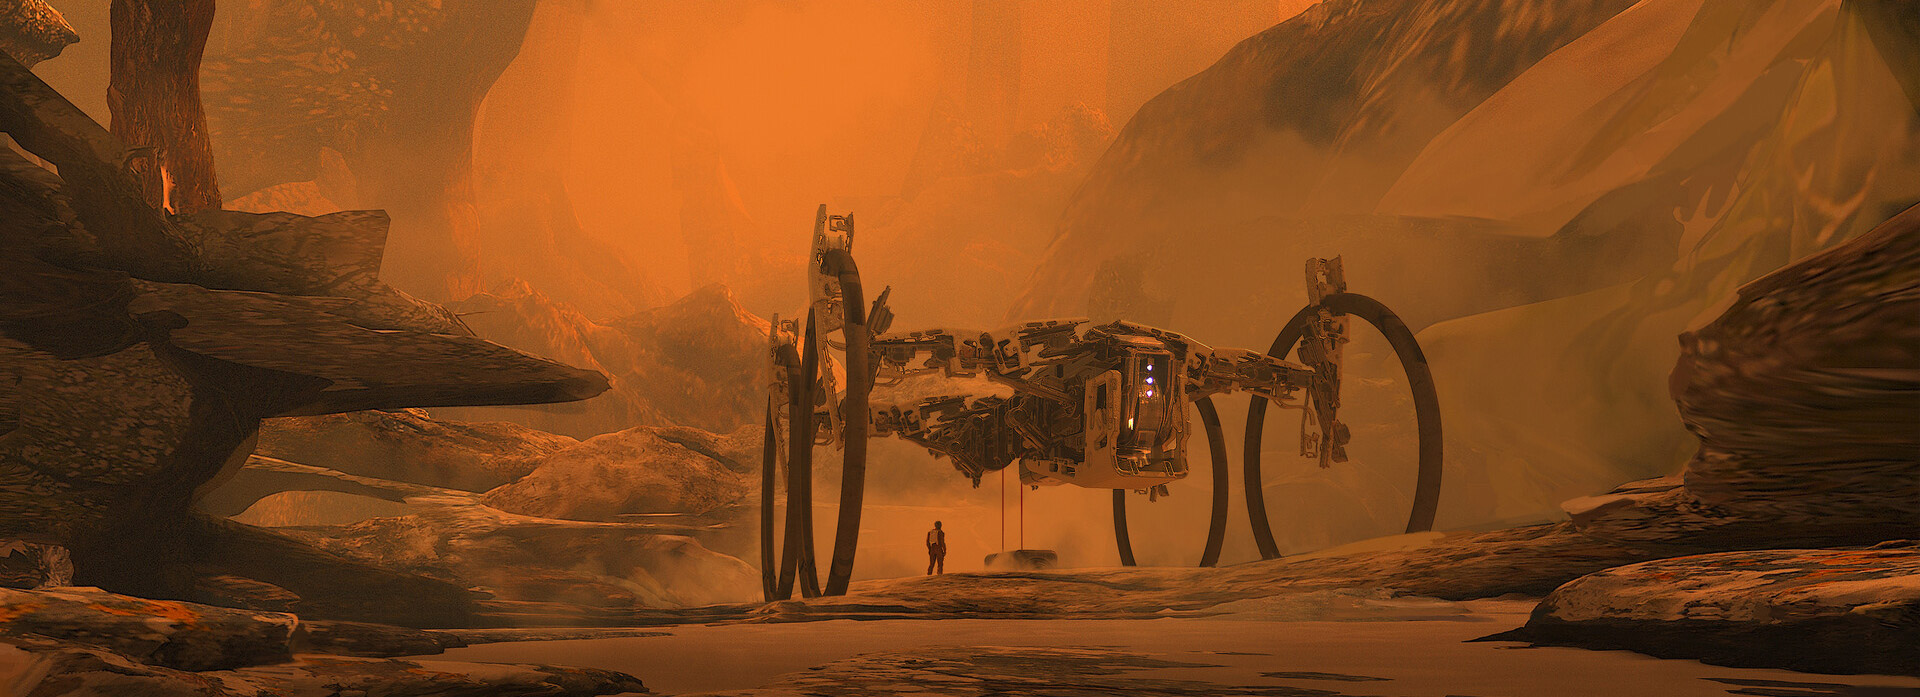 The Futuristic Sci-Fi Art of Artyom Turskyi